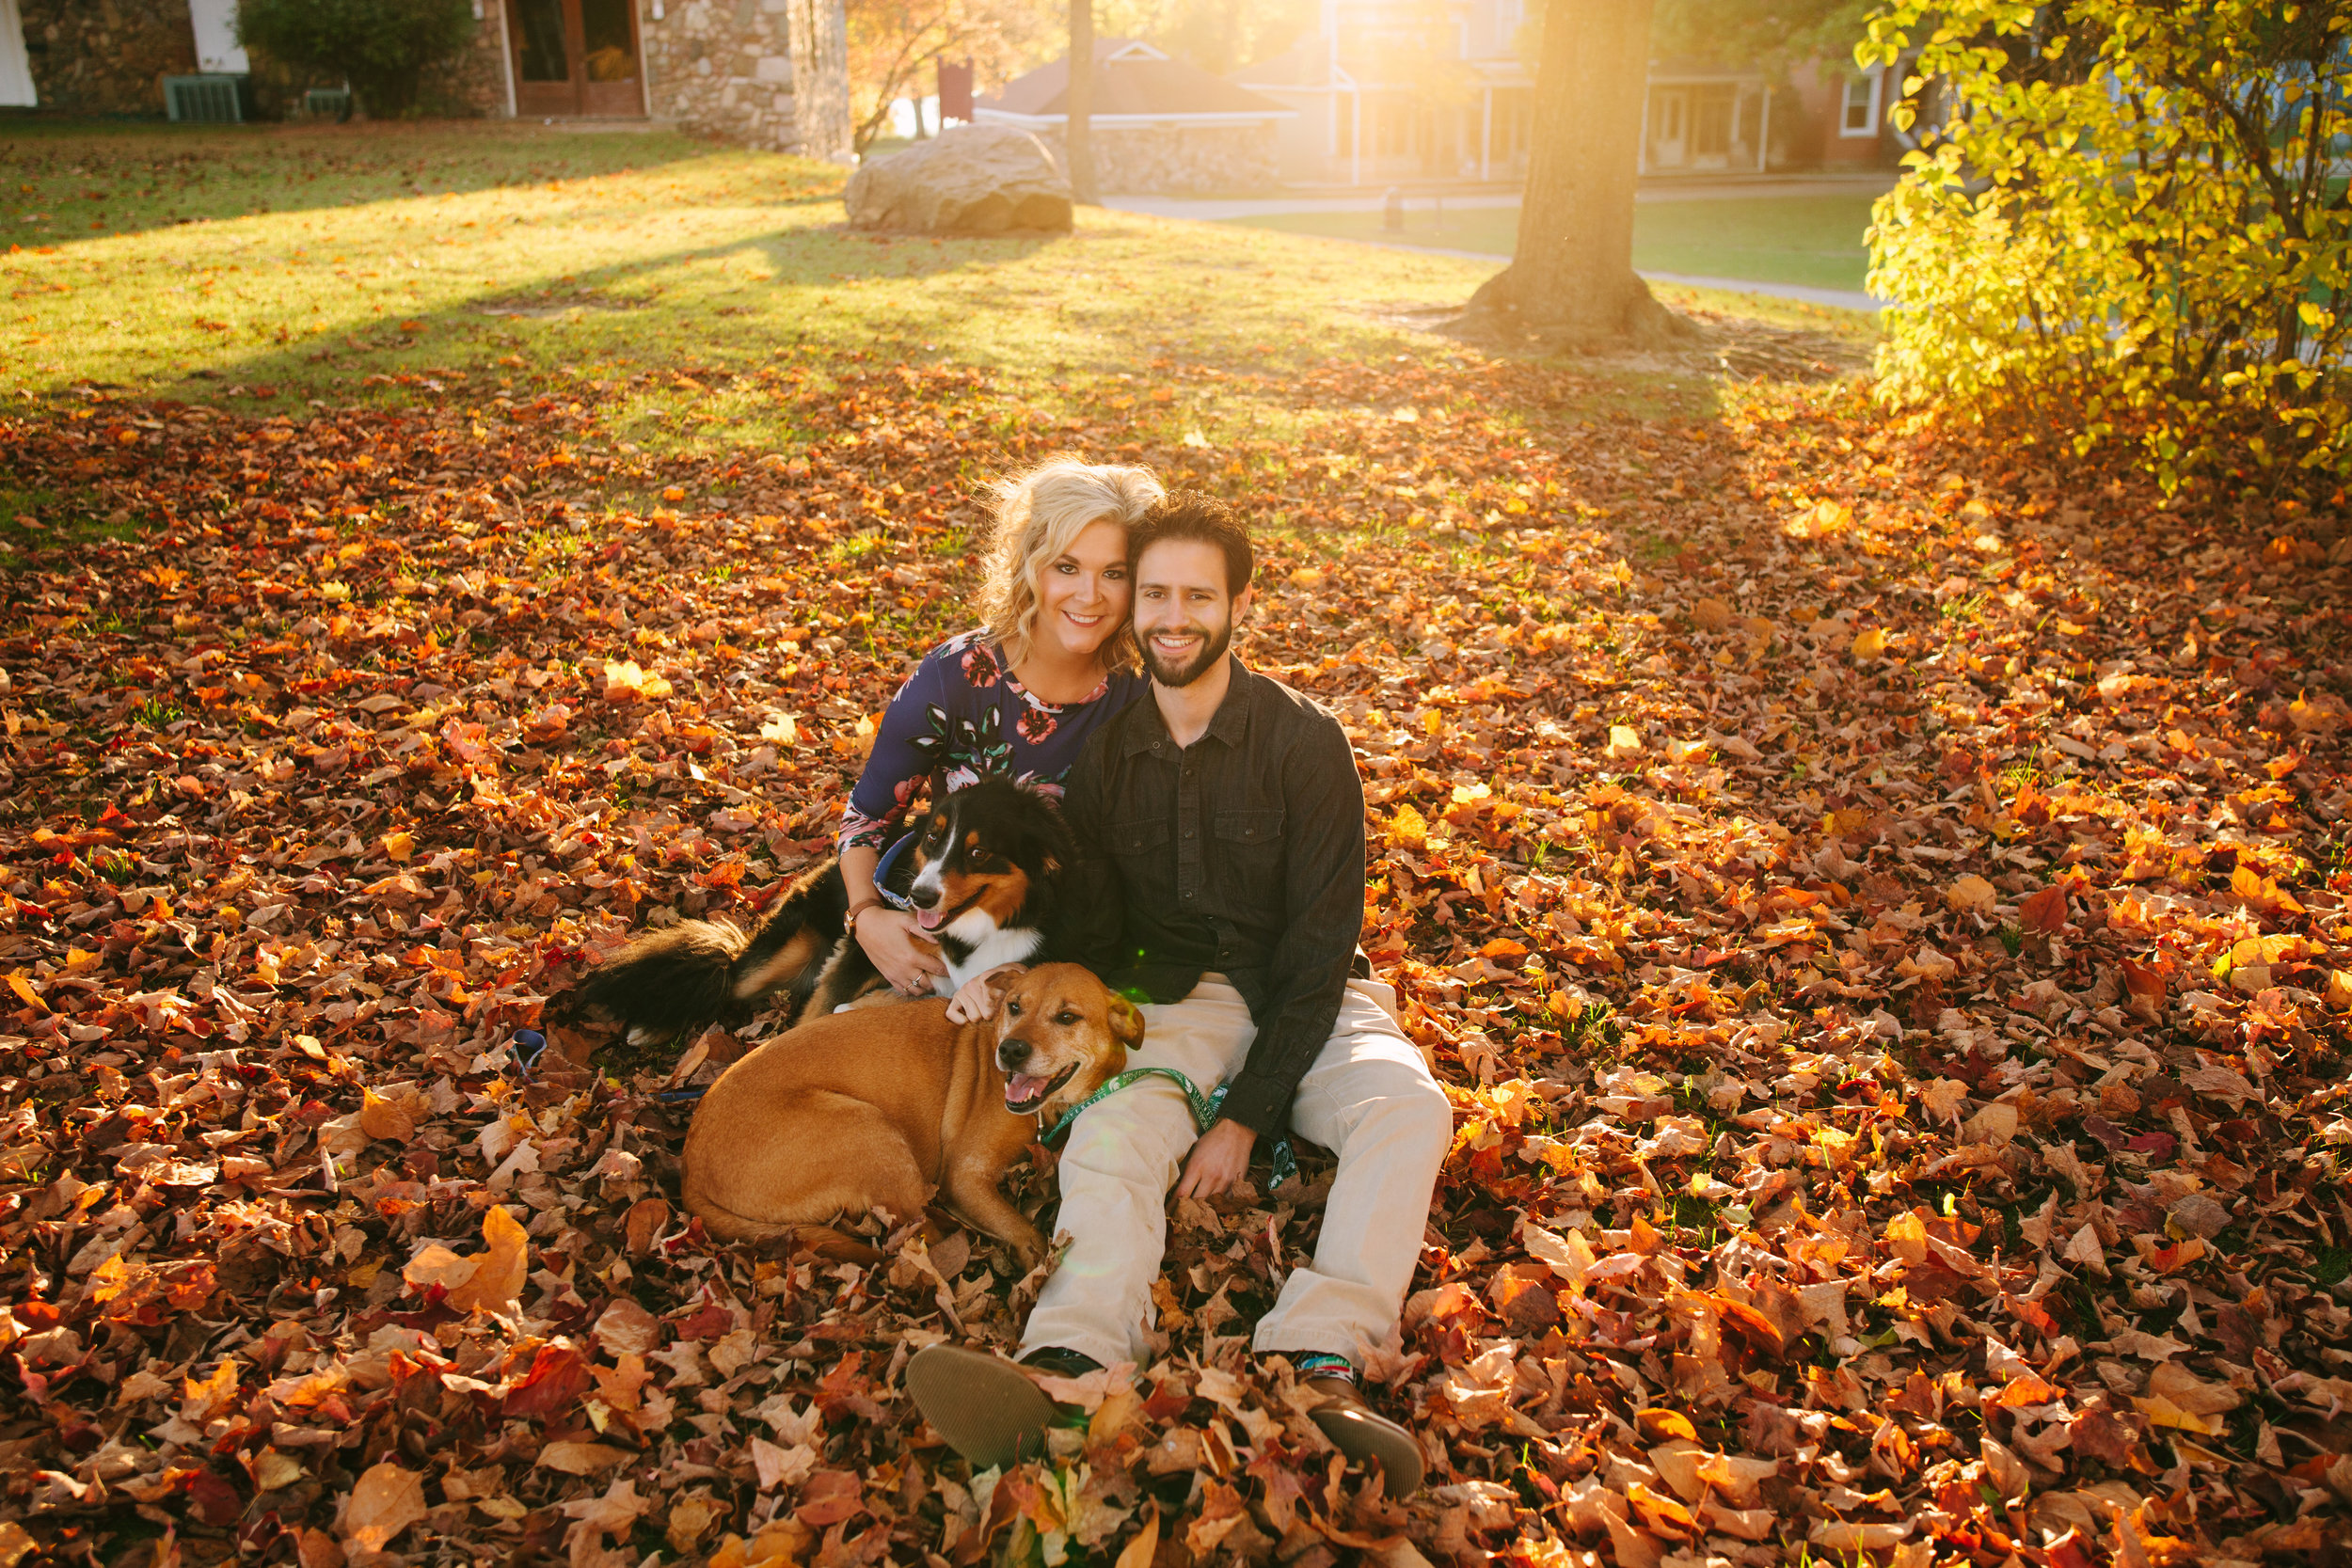 charltonpark_engagementsession_grandrapidsphotographer_grandrapids_hastings_michiganwedding_fallengagement_fallwedding_jdarlingphoto_jessicadarling_westmichiganphotographer_wedding_fall_rusticwedding  022.jpg